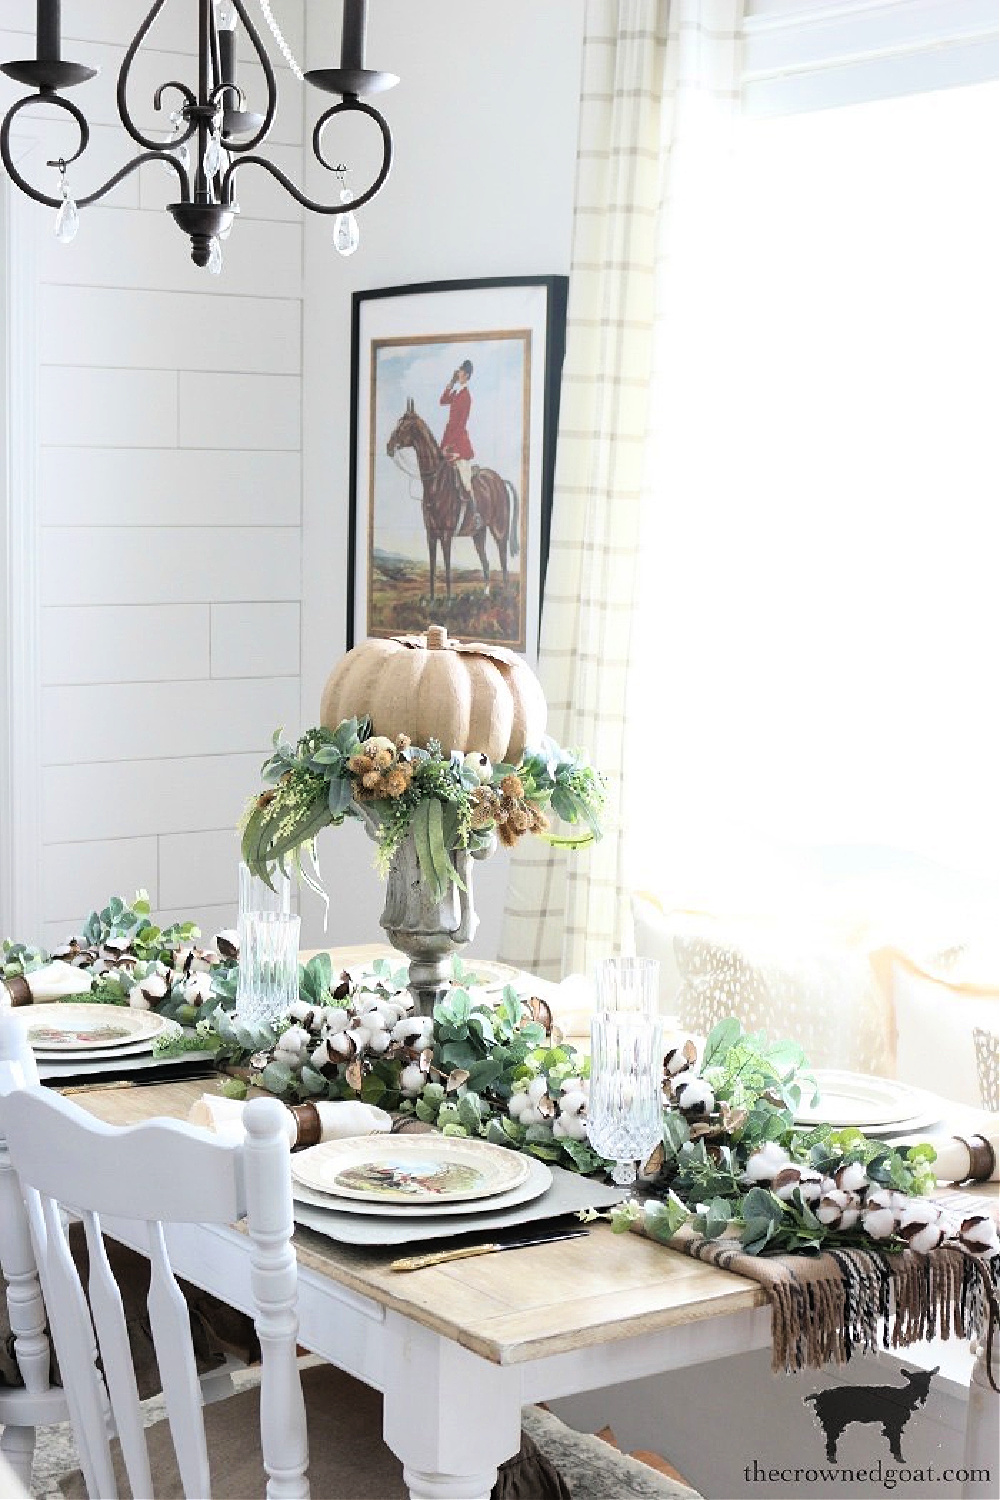 Easy Ways to Find Fall Inspiration-Equestrian Inspired Tablescape